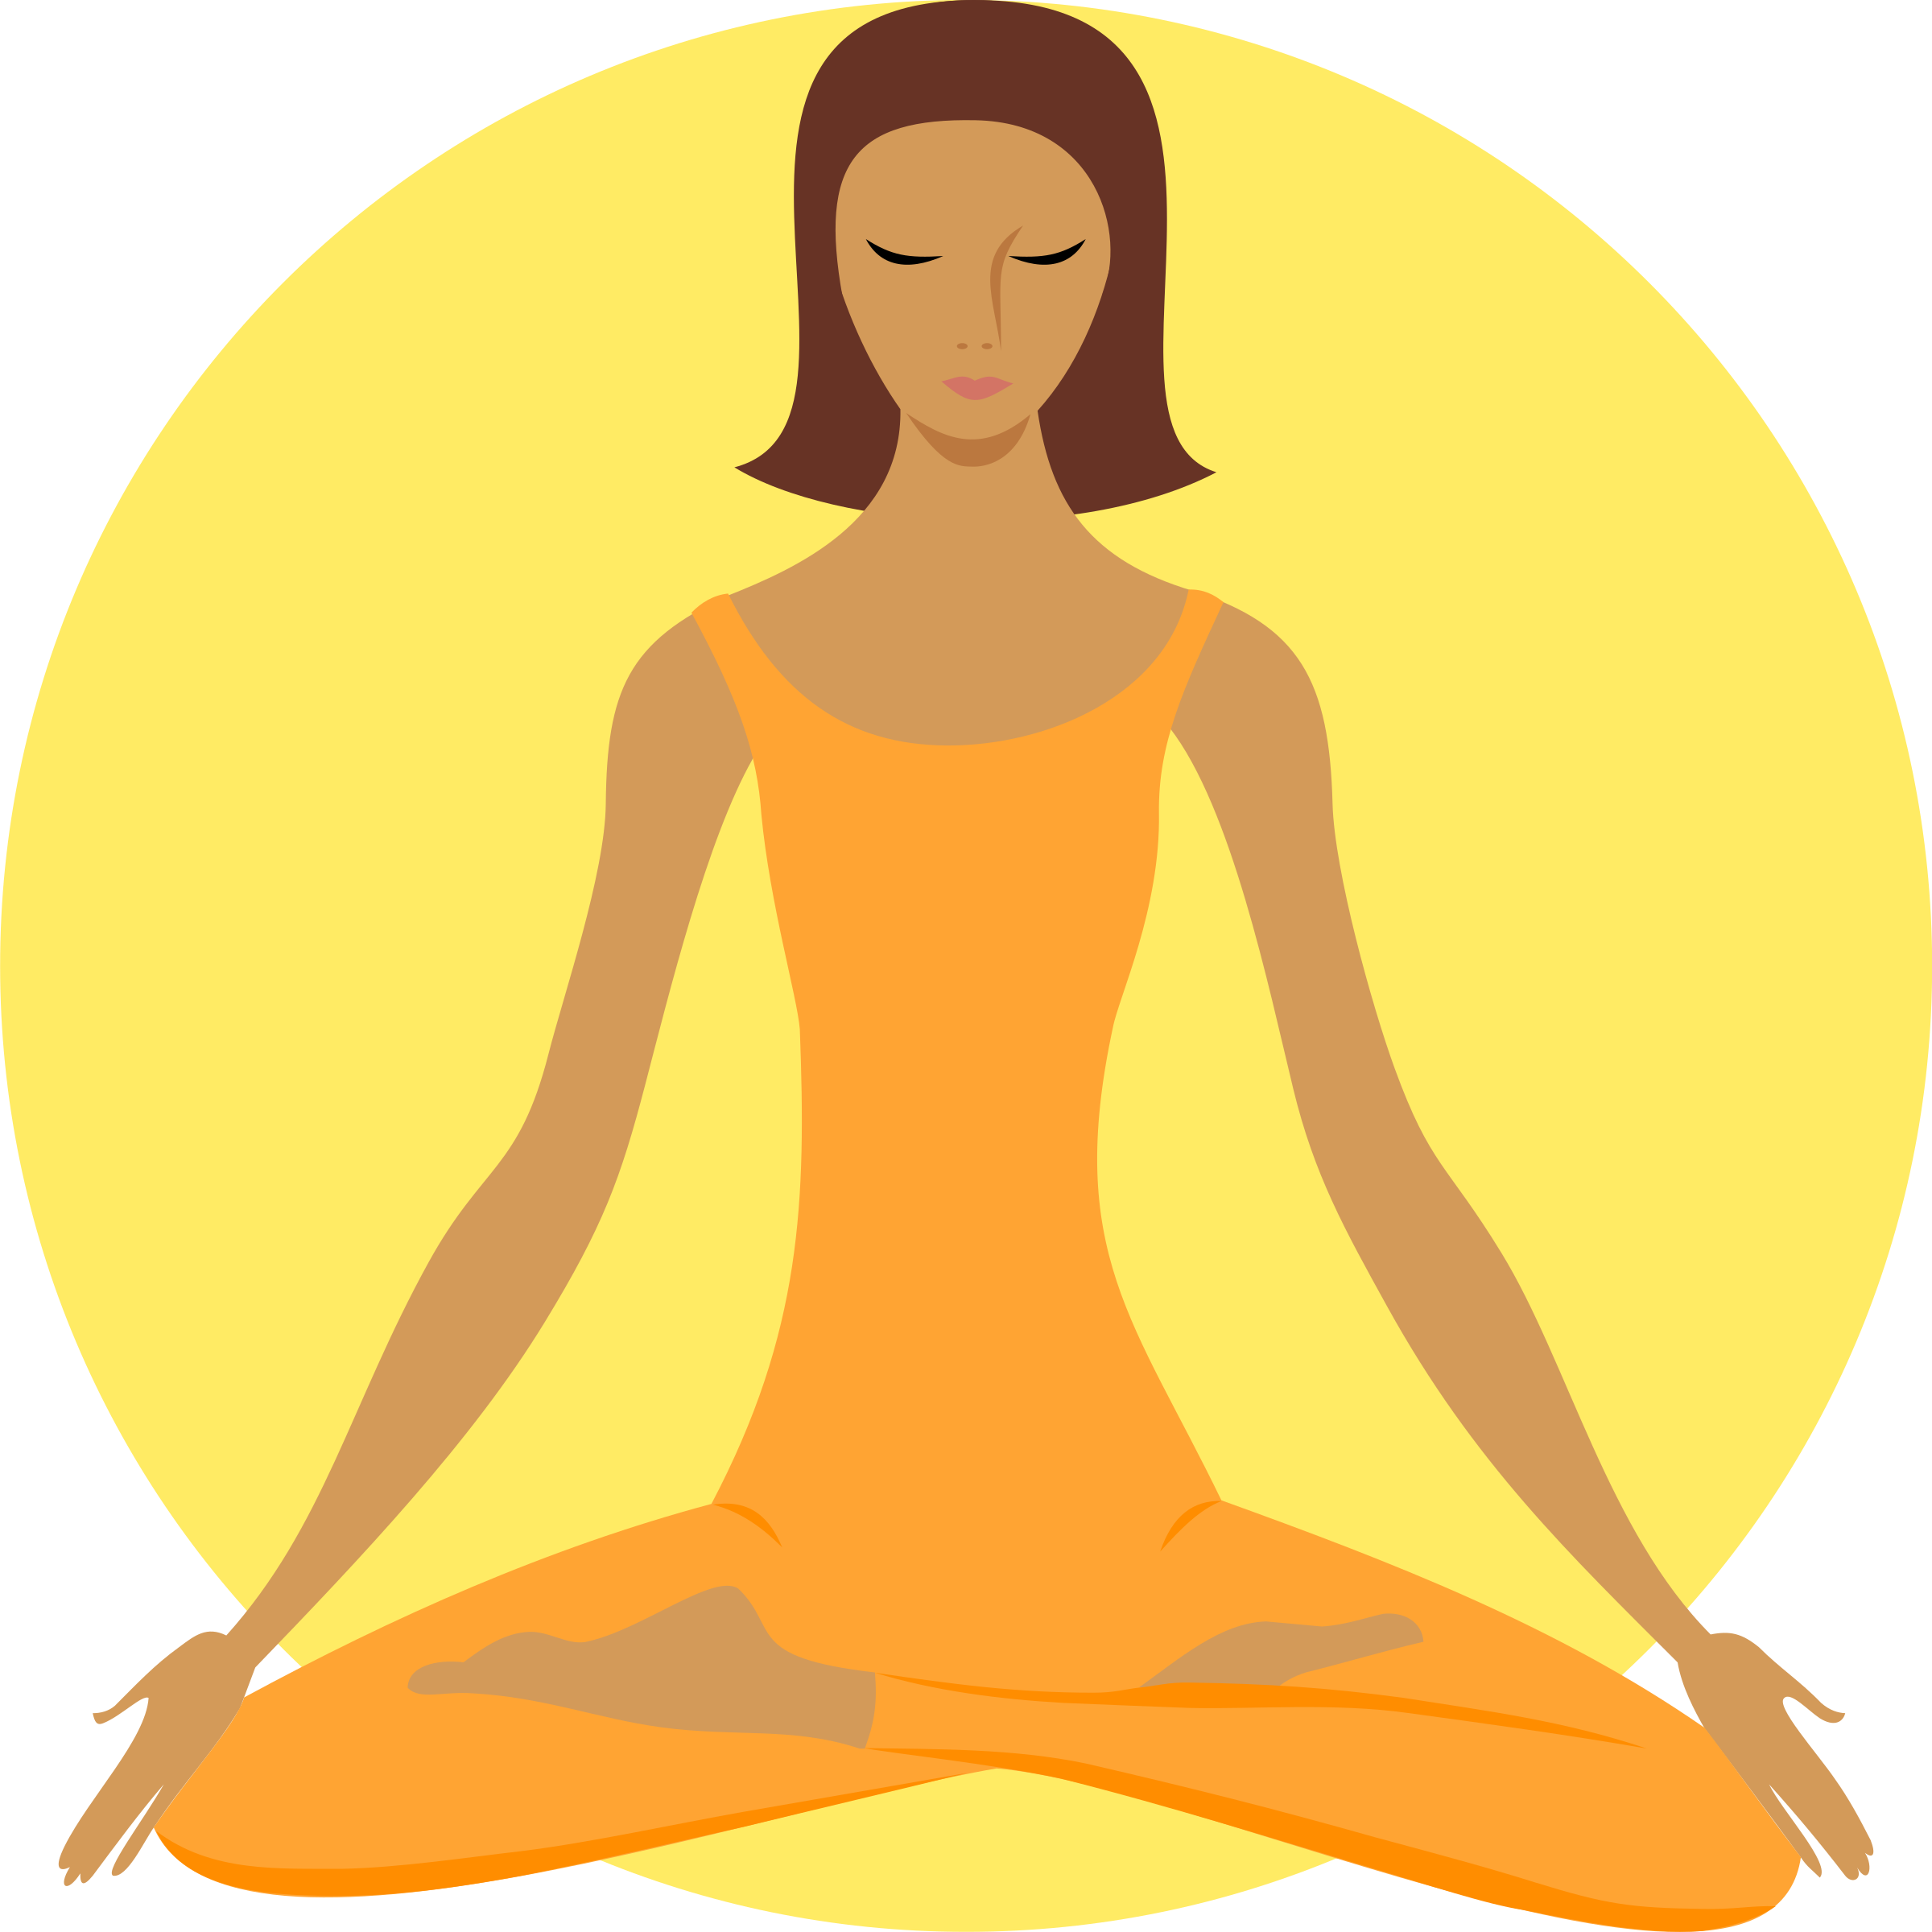 Meditation clipart stress relief. Add mindfulness and reduce